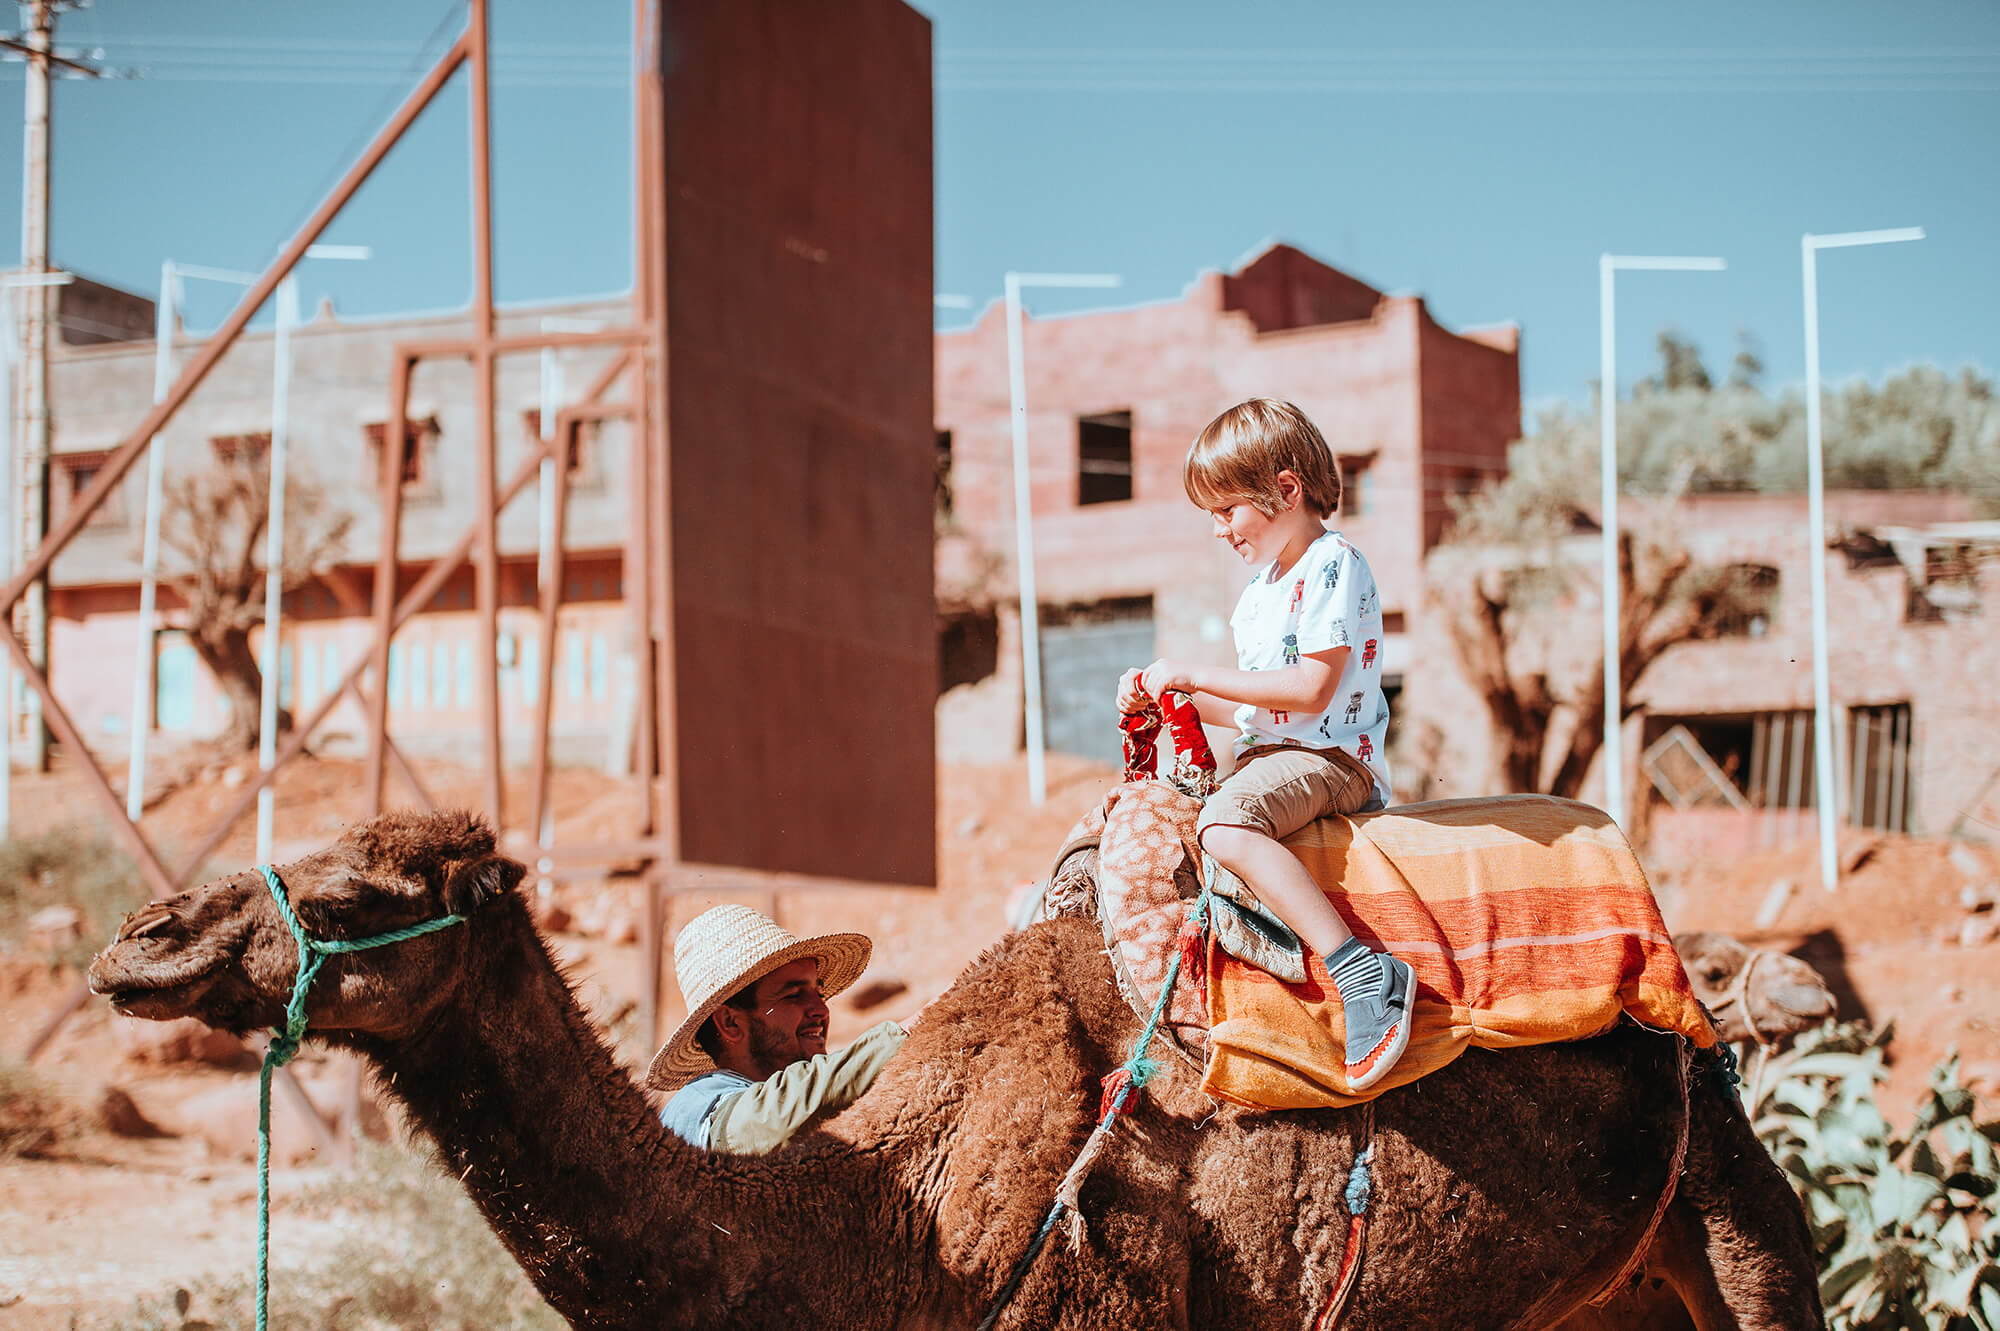 Sahara Desert Tour - Kids Activities in and around Morocco - Desert Tour for Kids